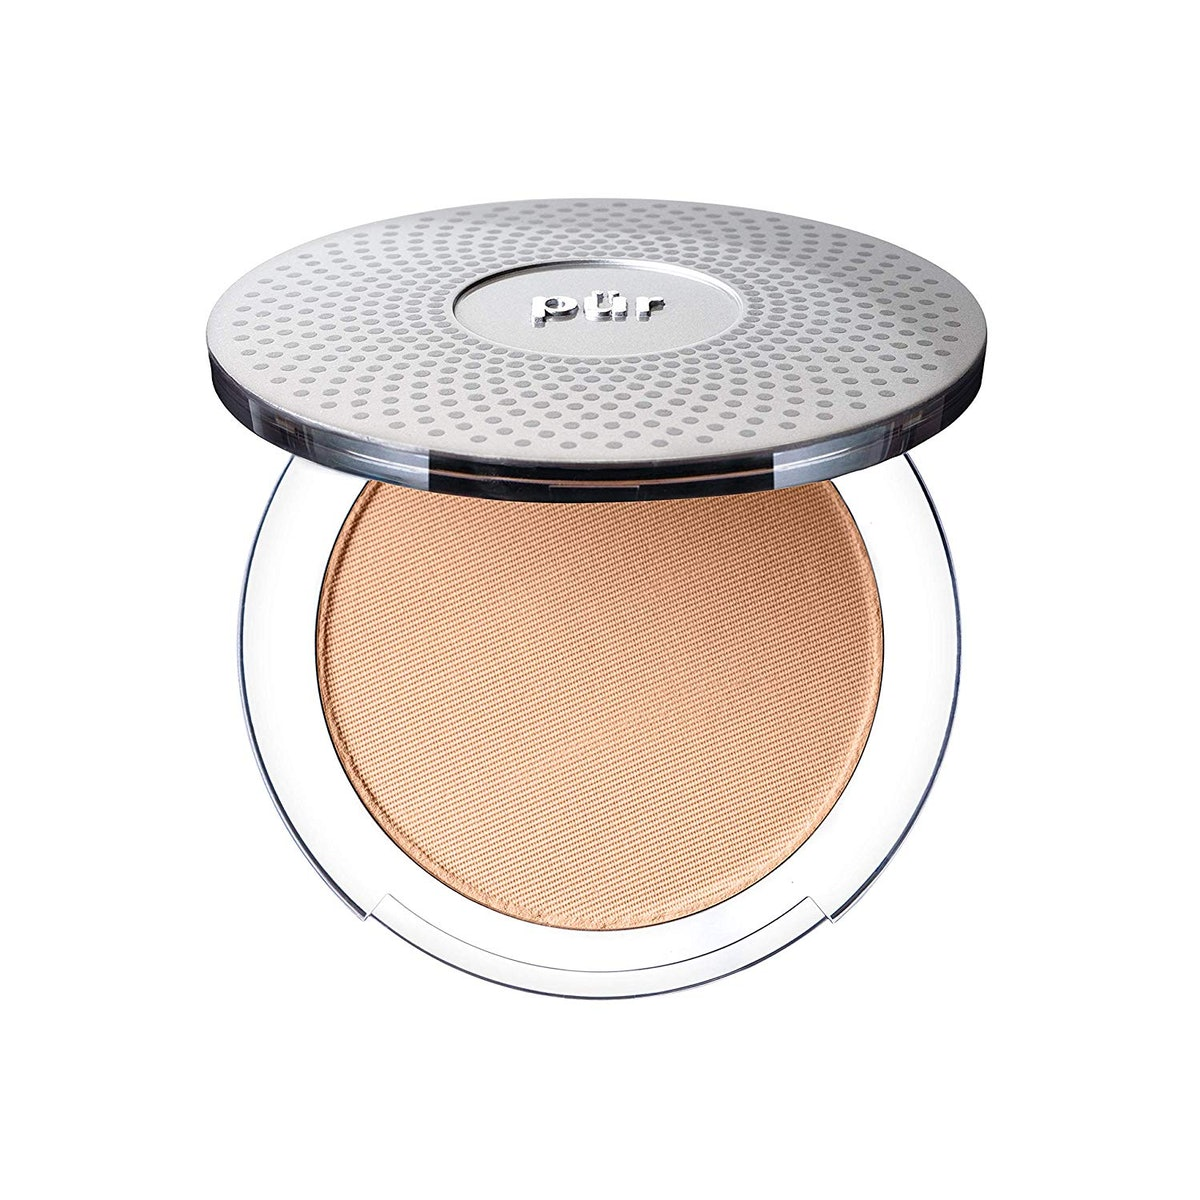 Pur Pressed Mineral Makeup Foundation With SPF 15